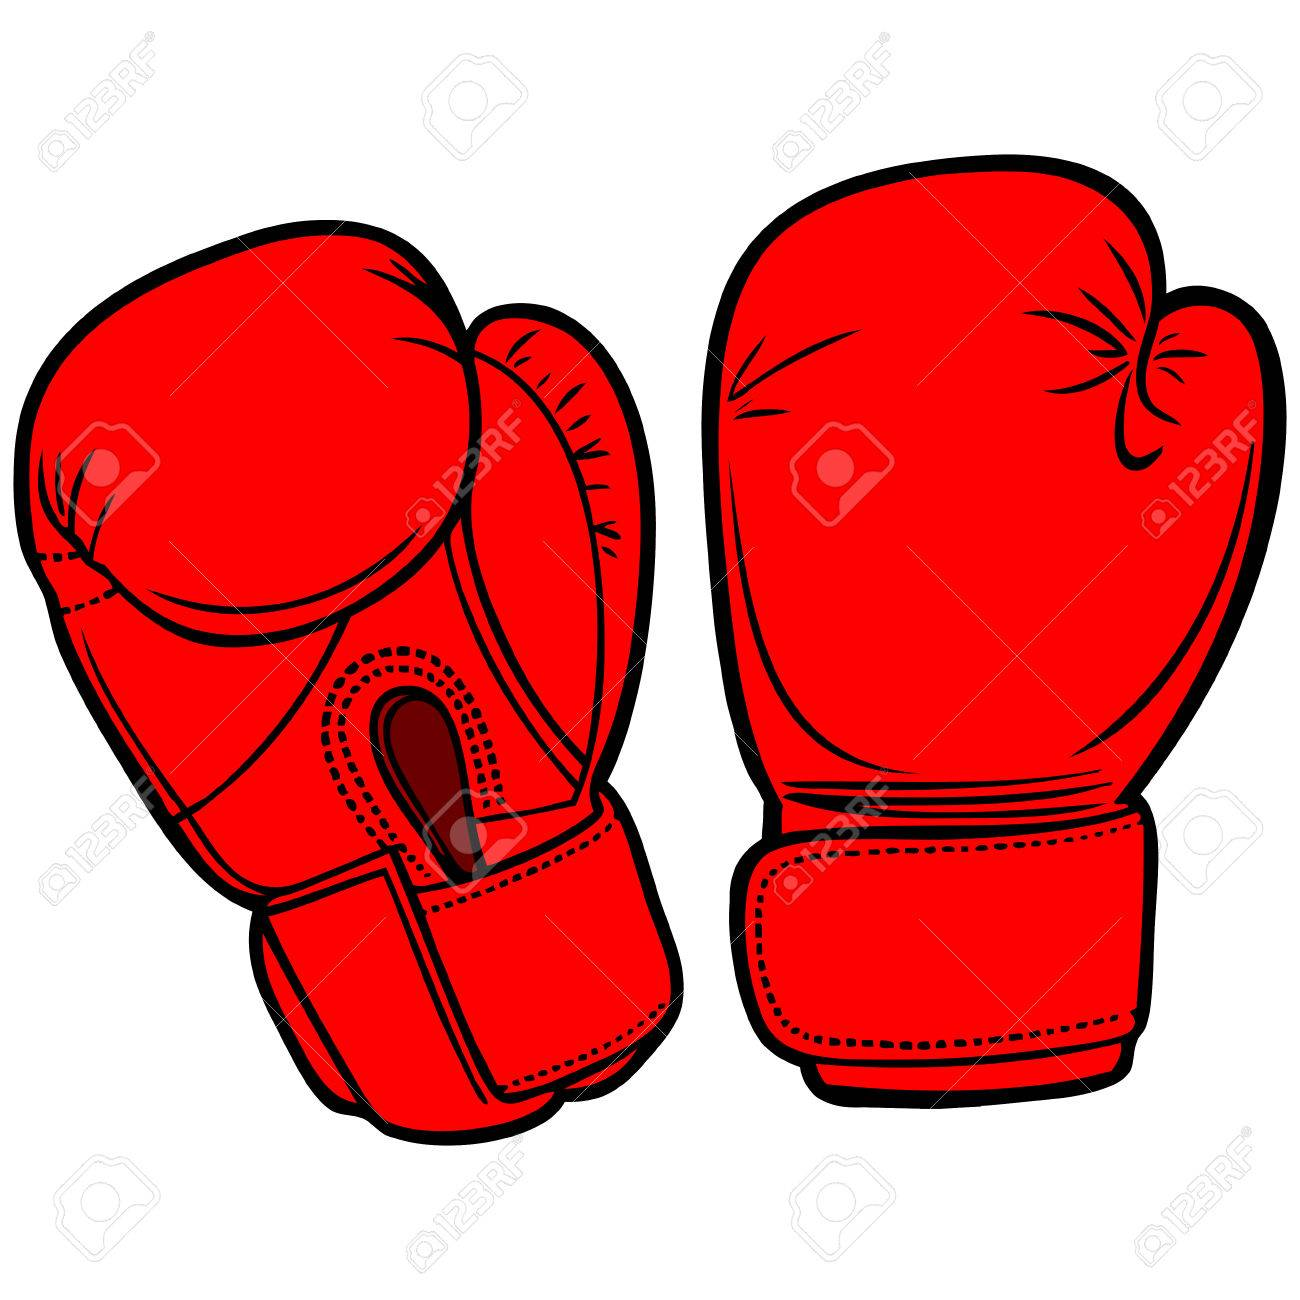 1300x1300 Boxing Gloves Royalty Free Cliparts, Vectors, And Stock